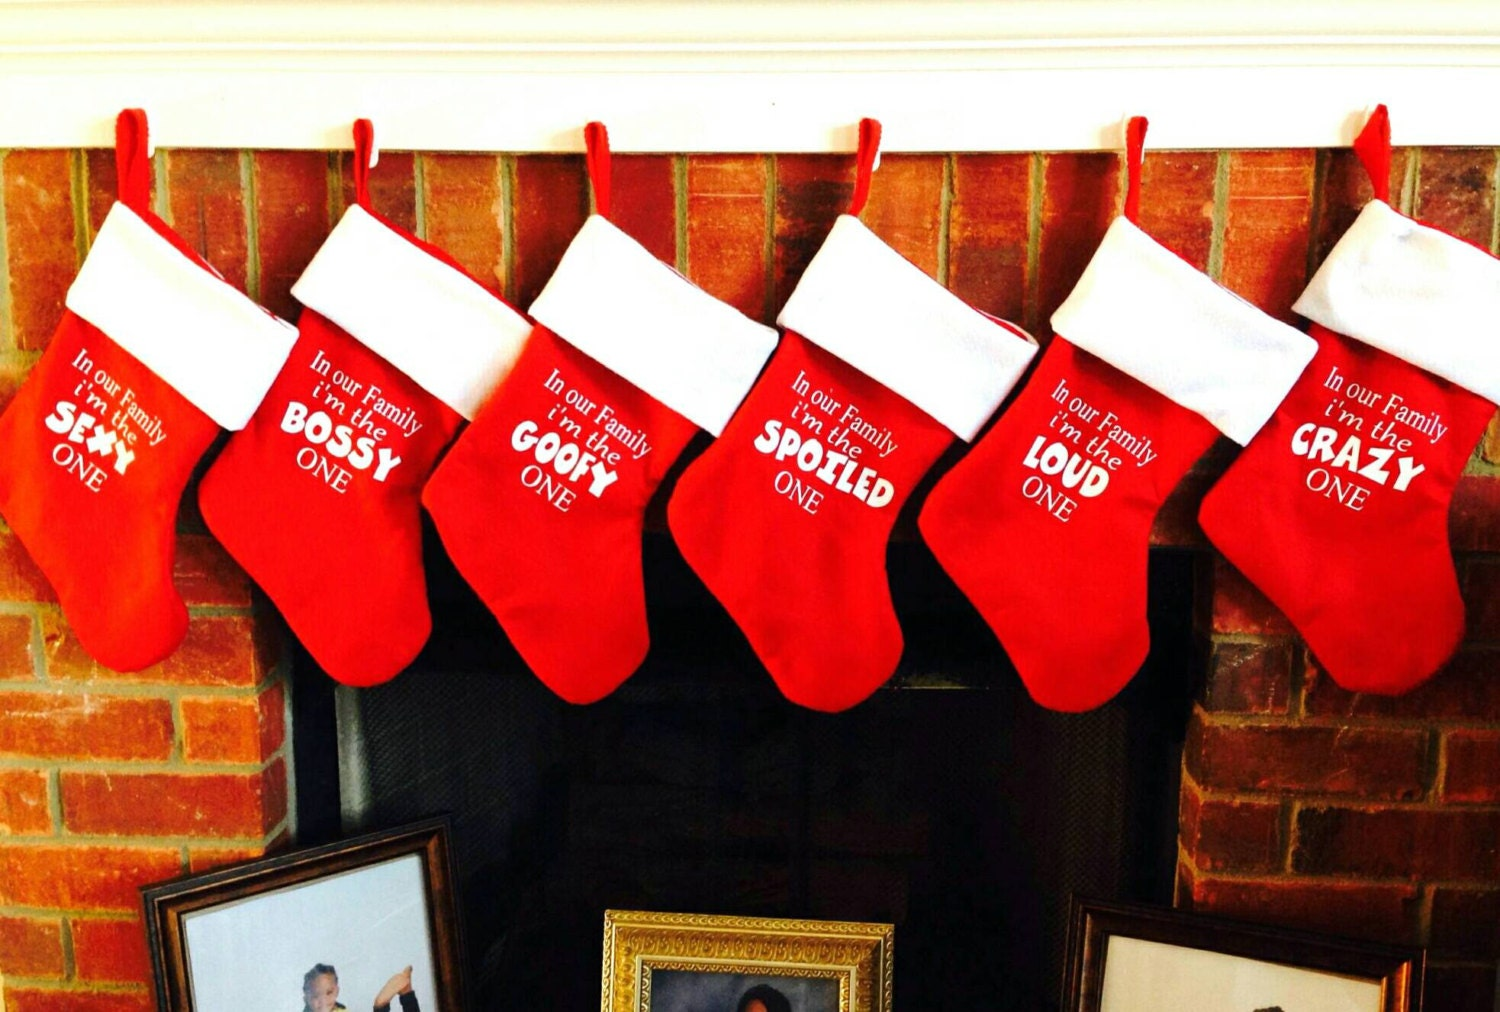 Uncategorized Funny Christmas Decorations Pictures family christmas stockings red funny decorations personalized stoc